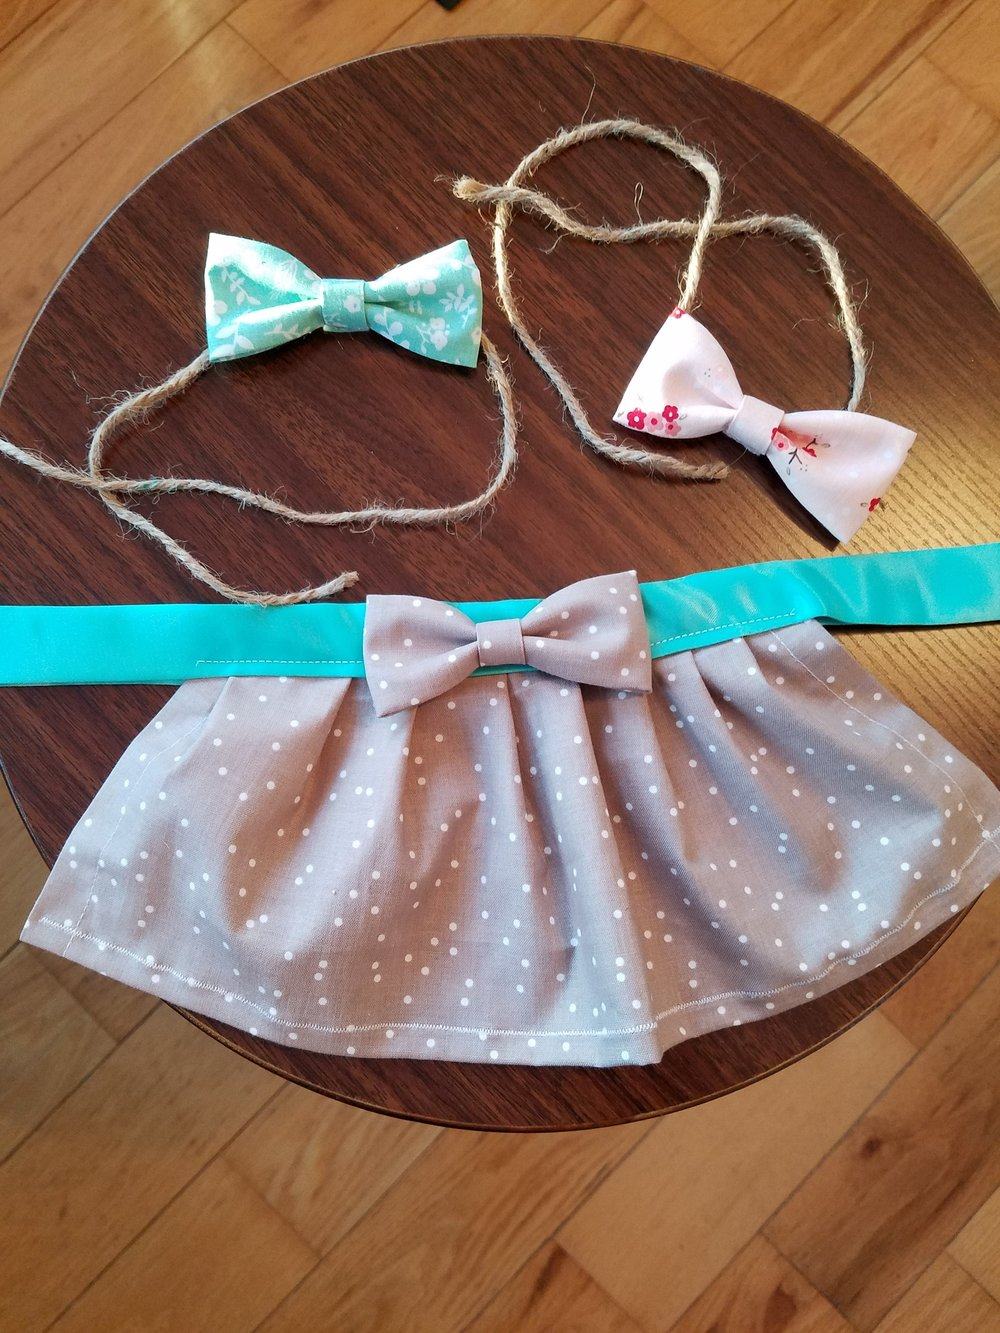 Newborn Props - Tie-back bow headbands and Tie-Back reversible skirts are now available.Please contact me with interest.